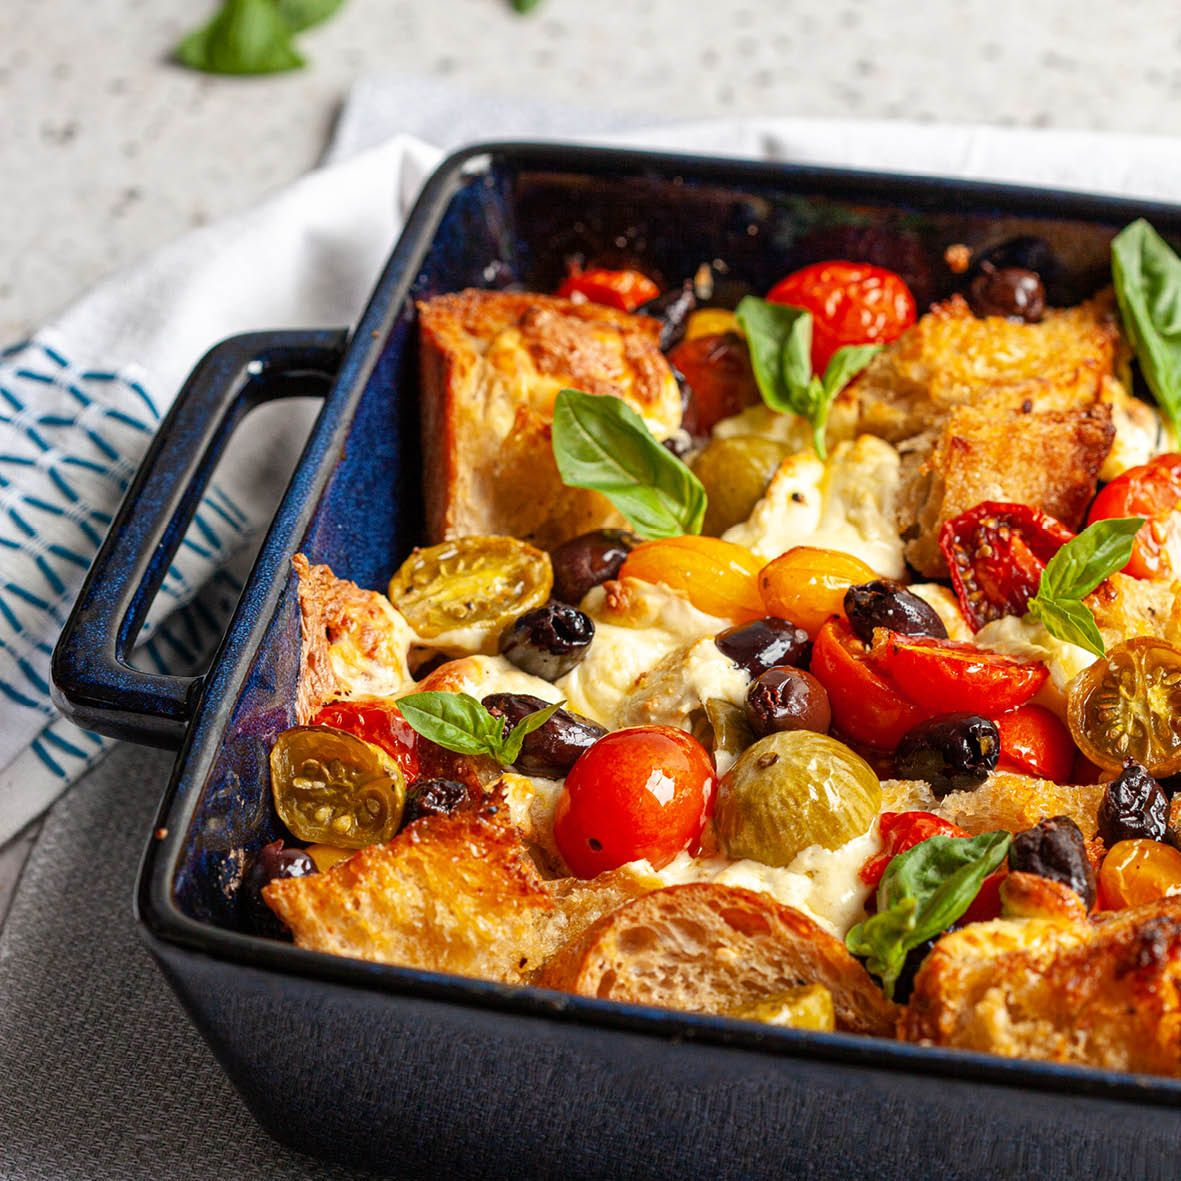 Baked Westhaven Cow Fetta with Tomatoes and Olives.jpg